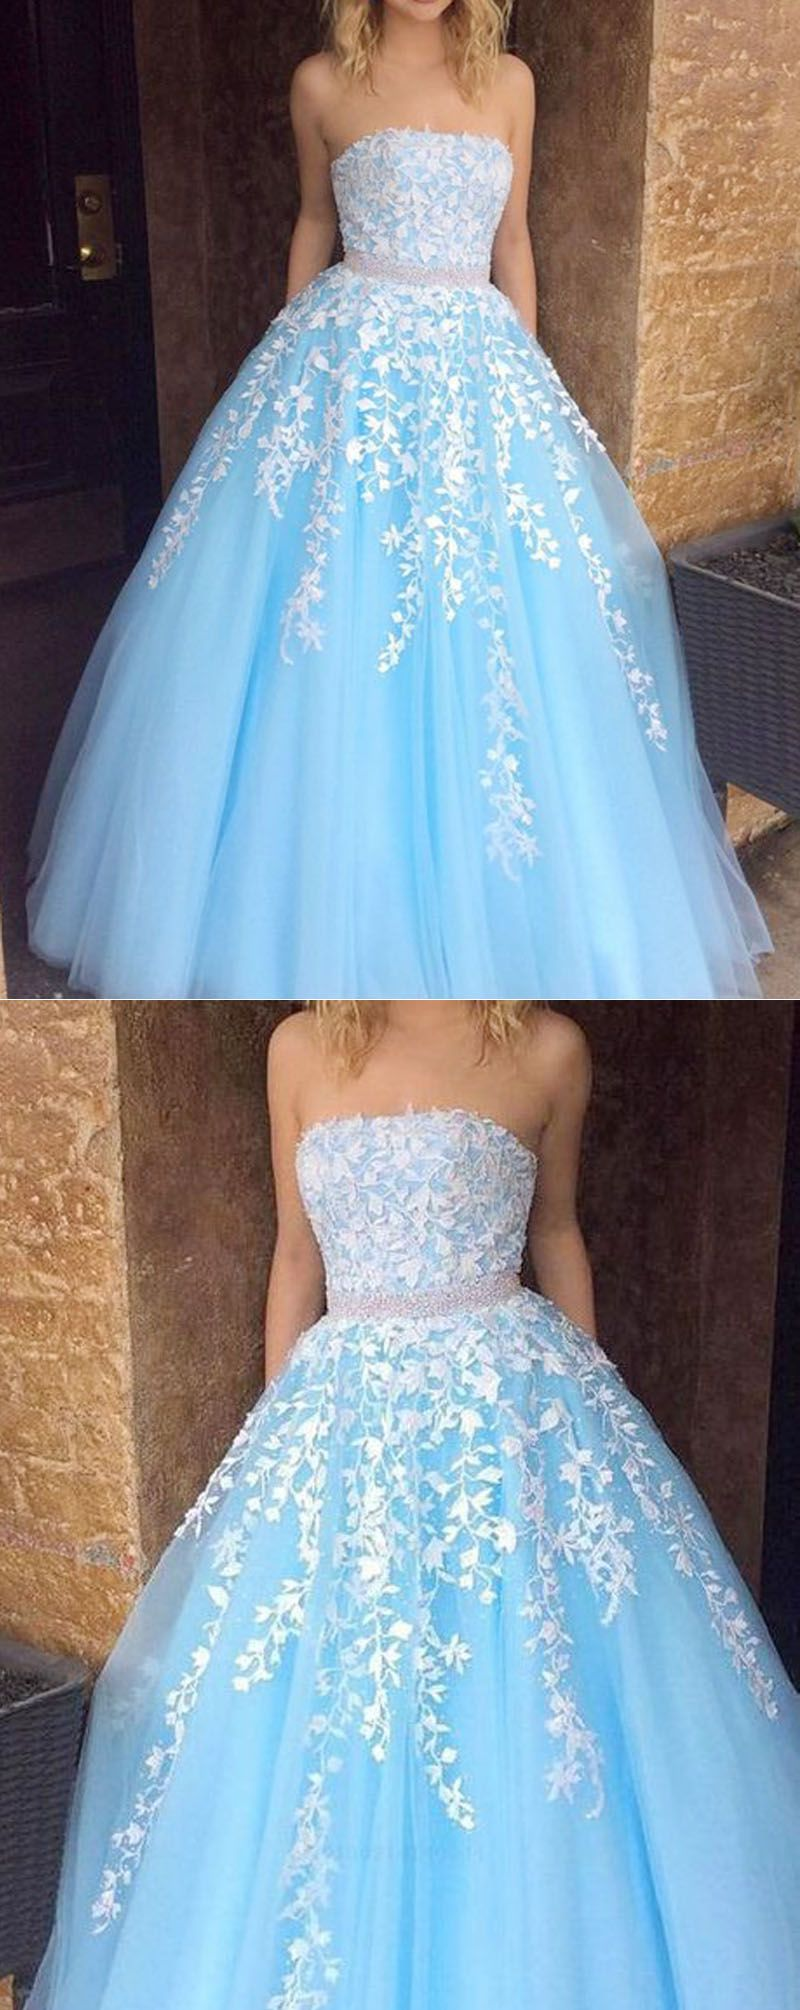 Sweet Baby Blue Strapsless Lace Tulle Girls Senior Prom ...